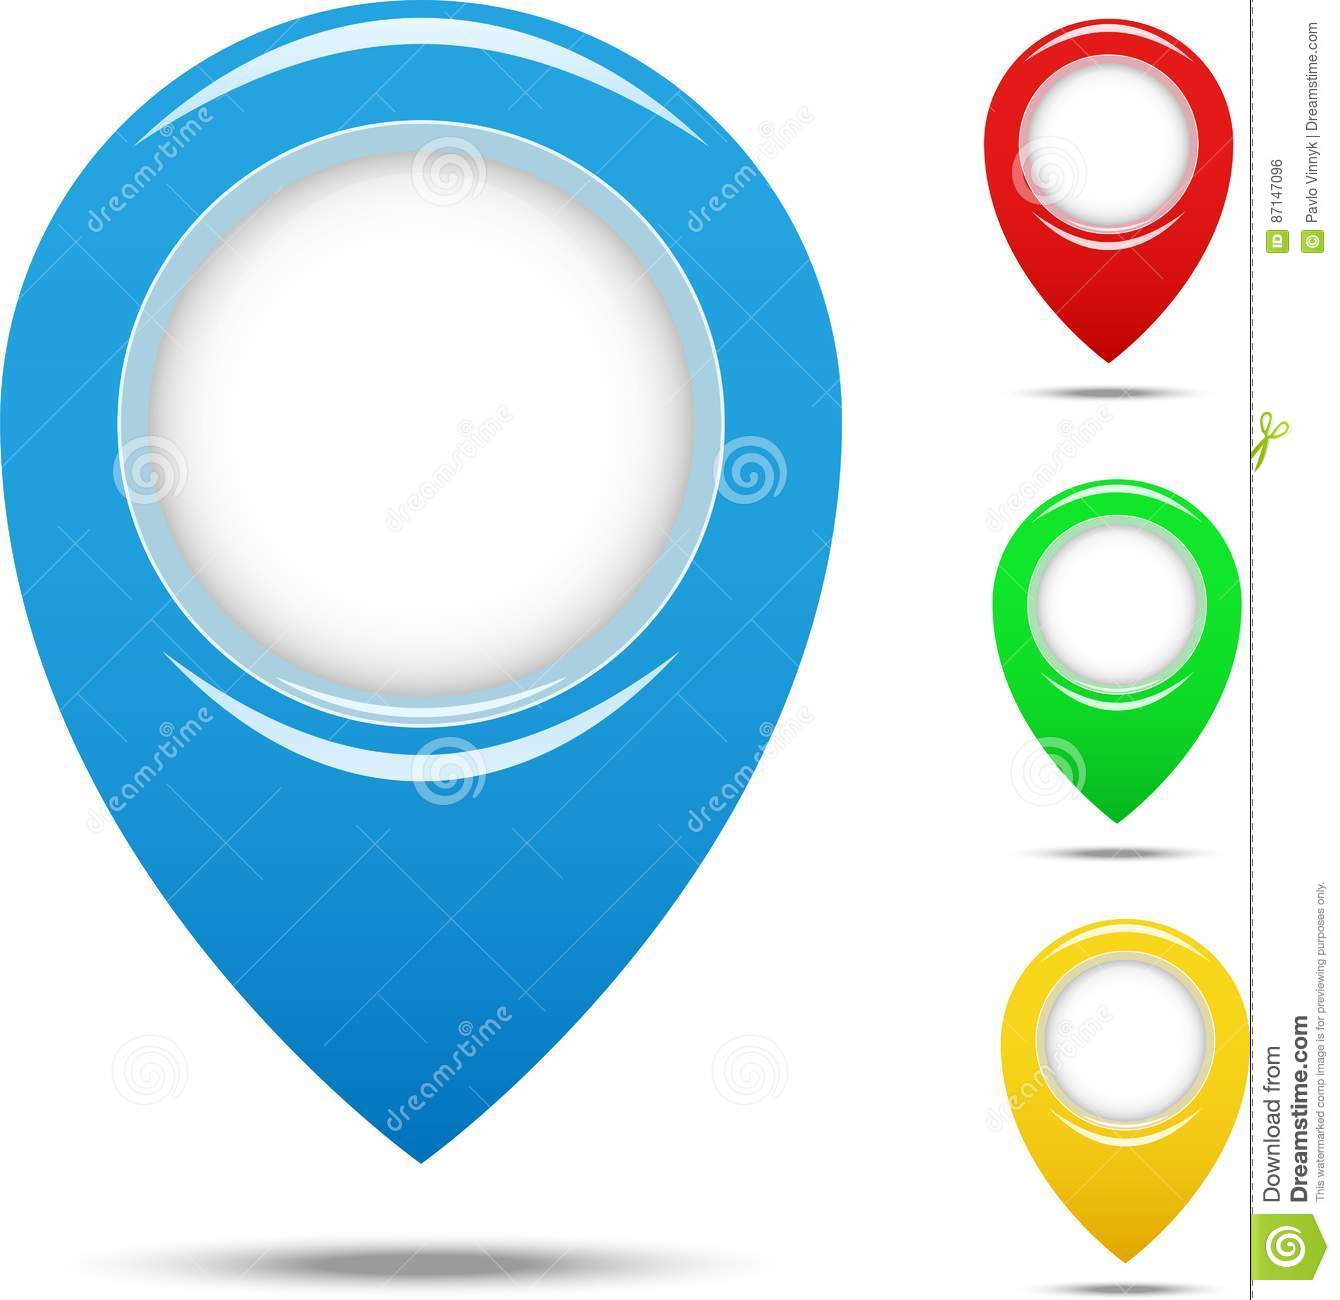 Set of different colors plastic map pointers for websites UI or applications app for smartphones or tablets